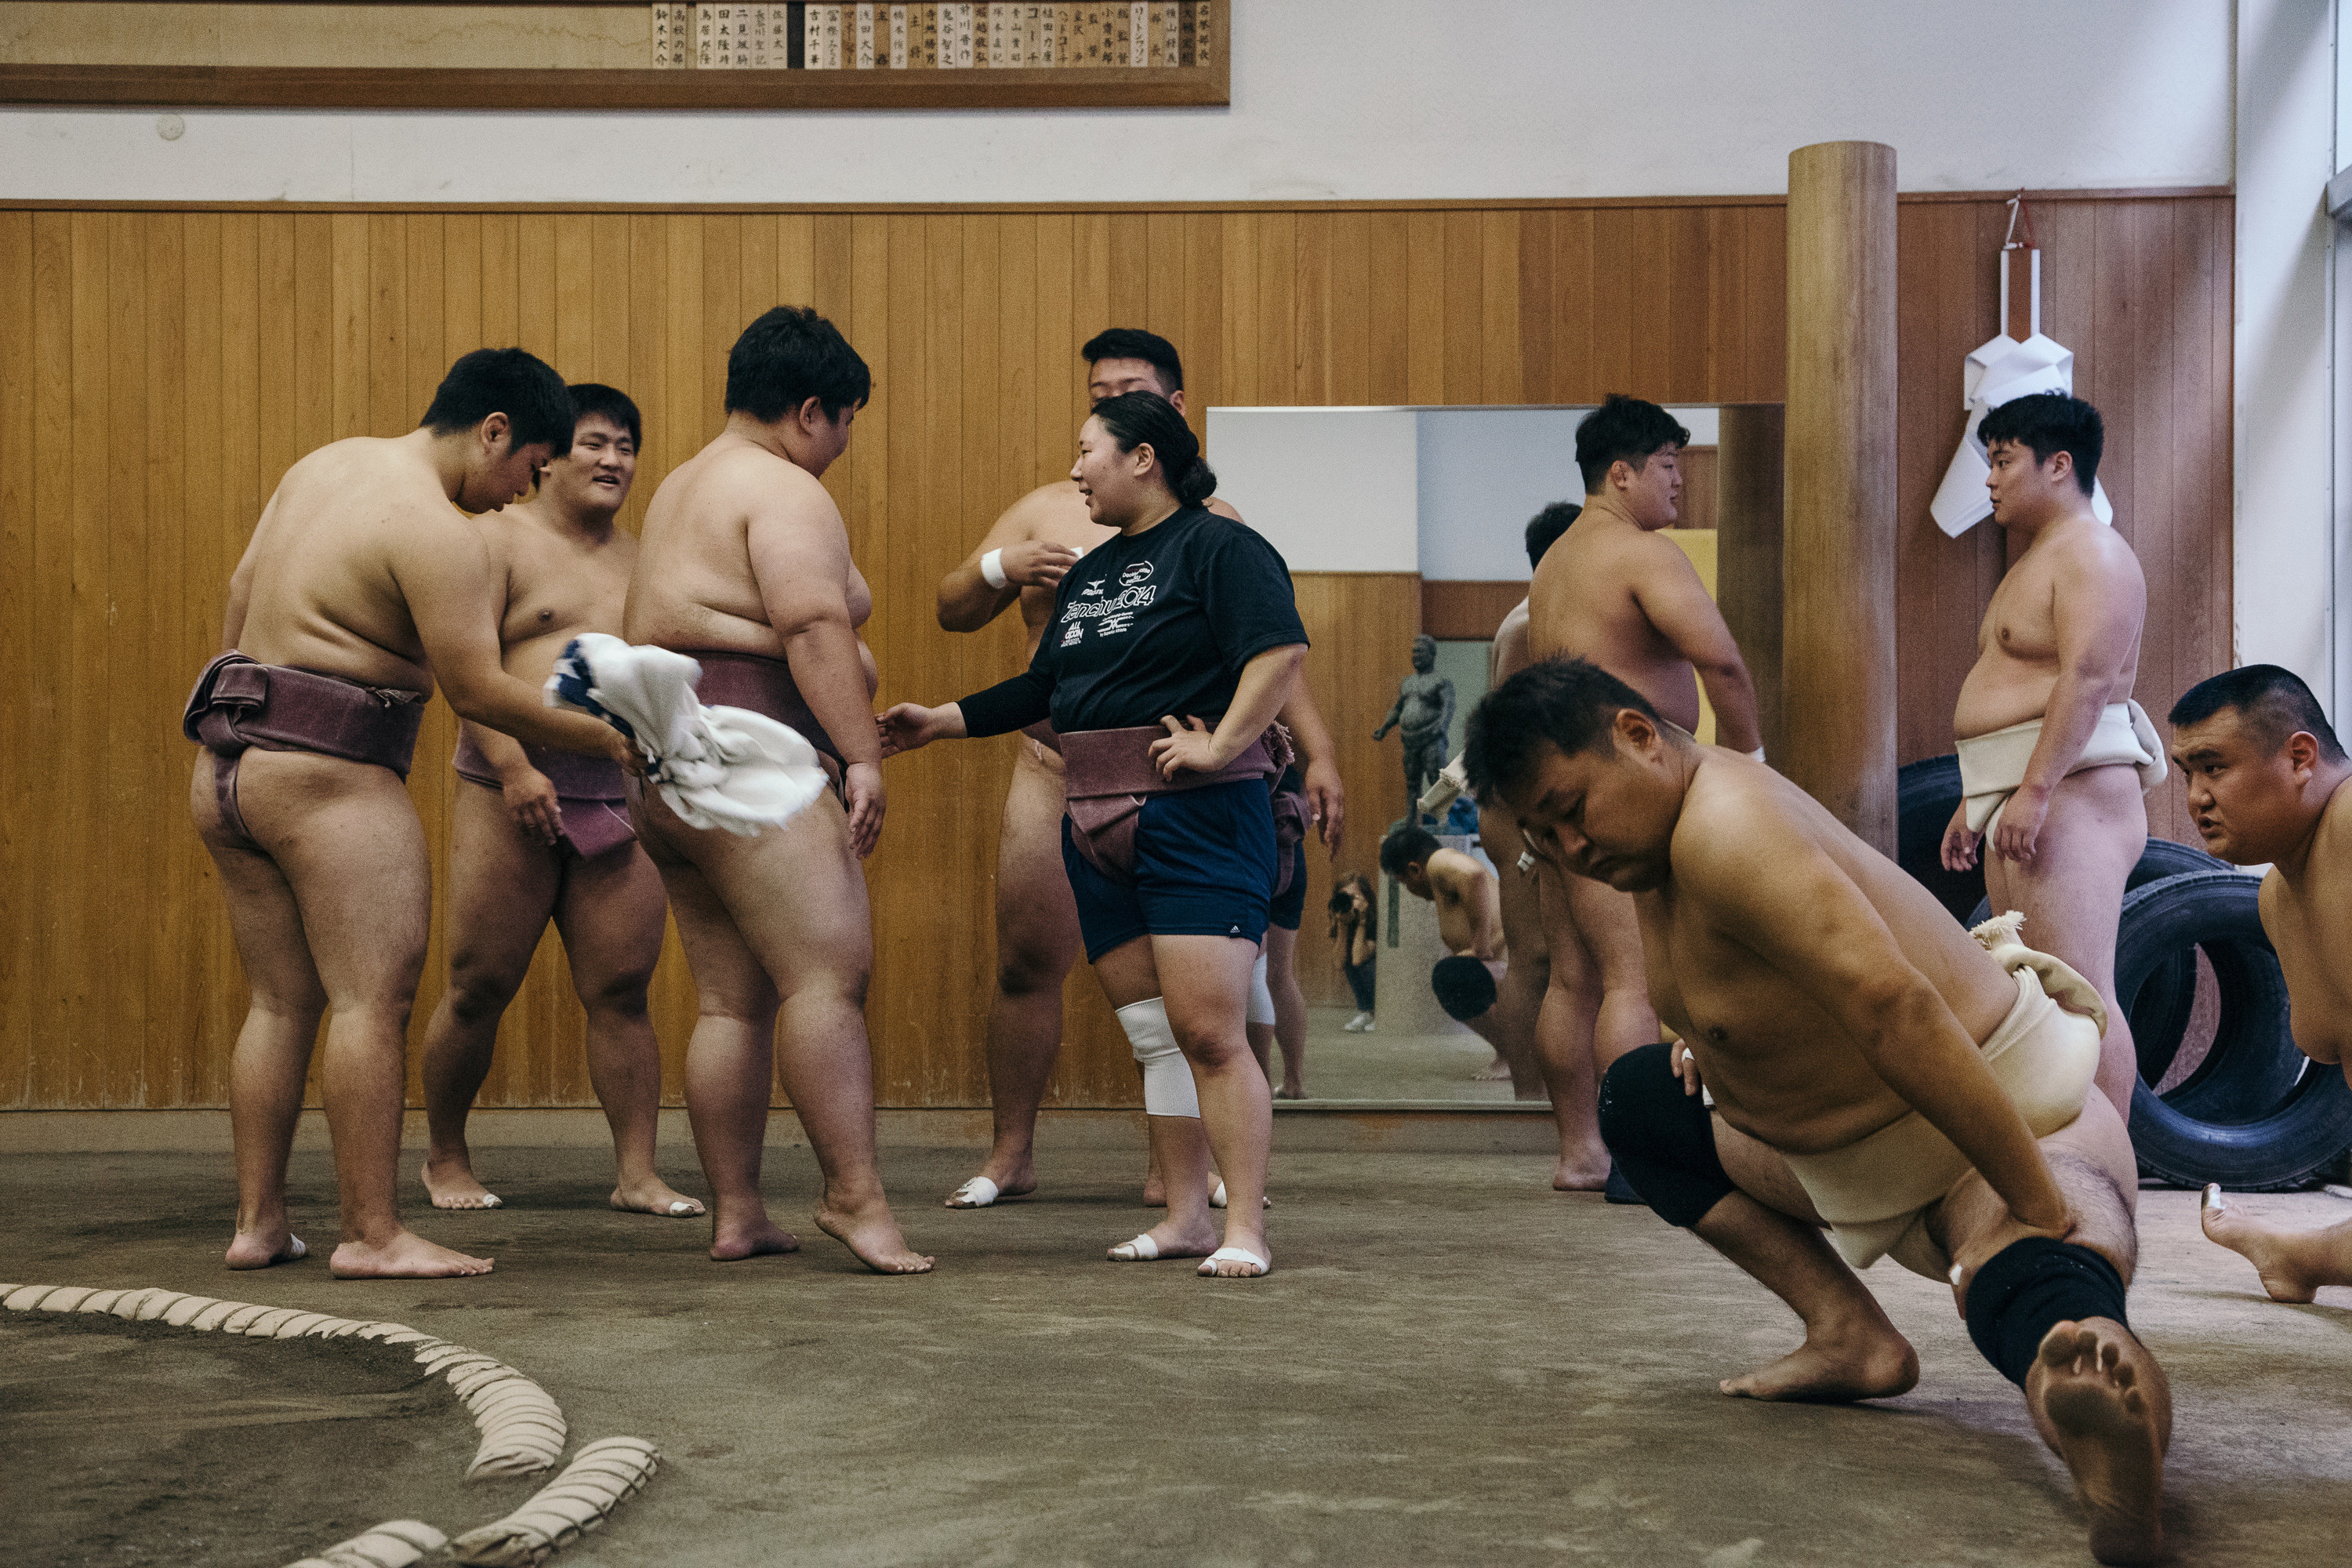 A female sumo wrestler in a practice room with a bunch of male sumo wrestlers